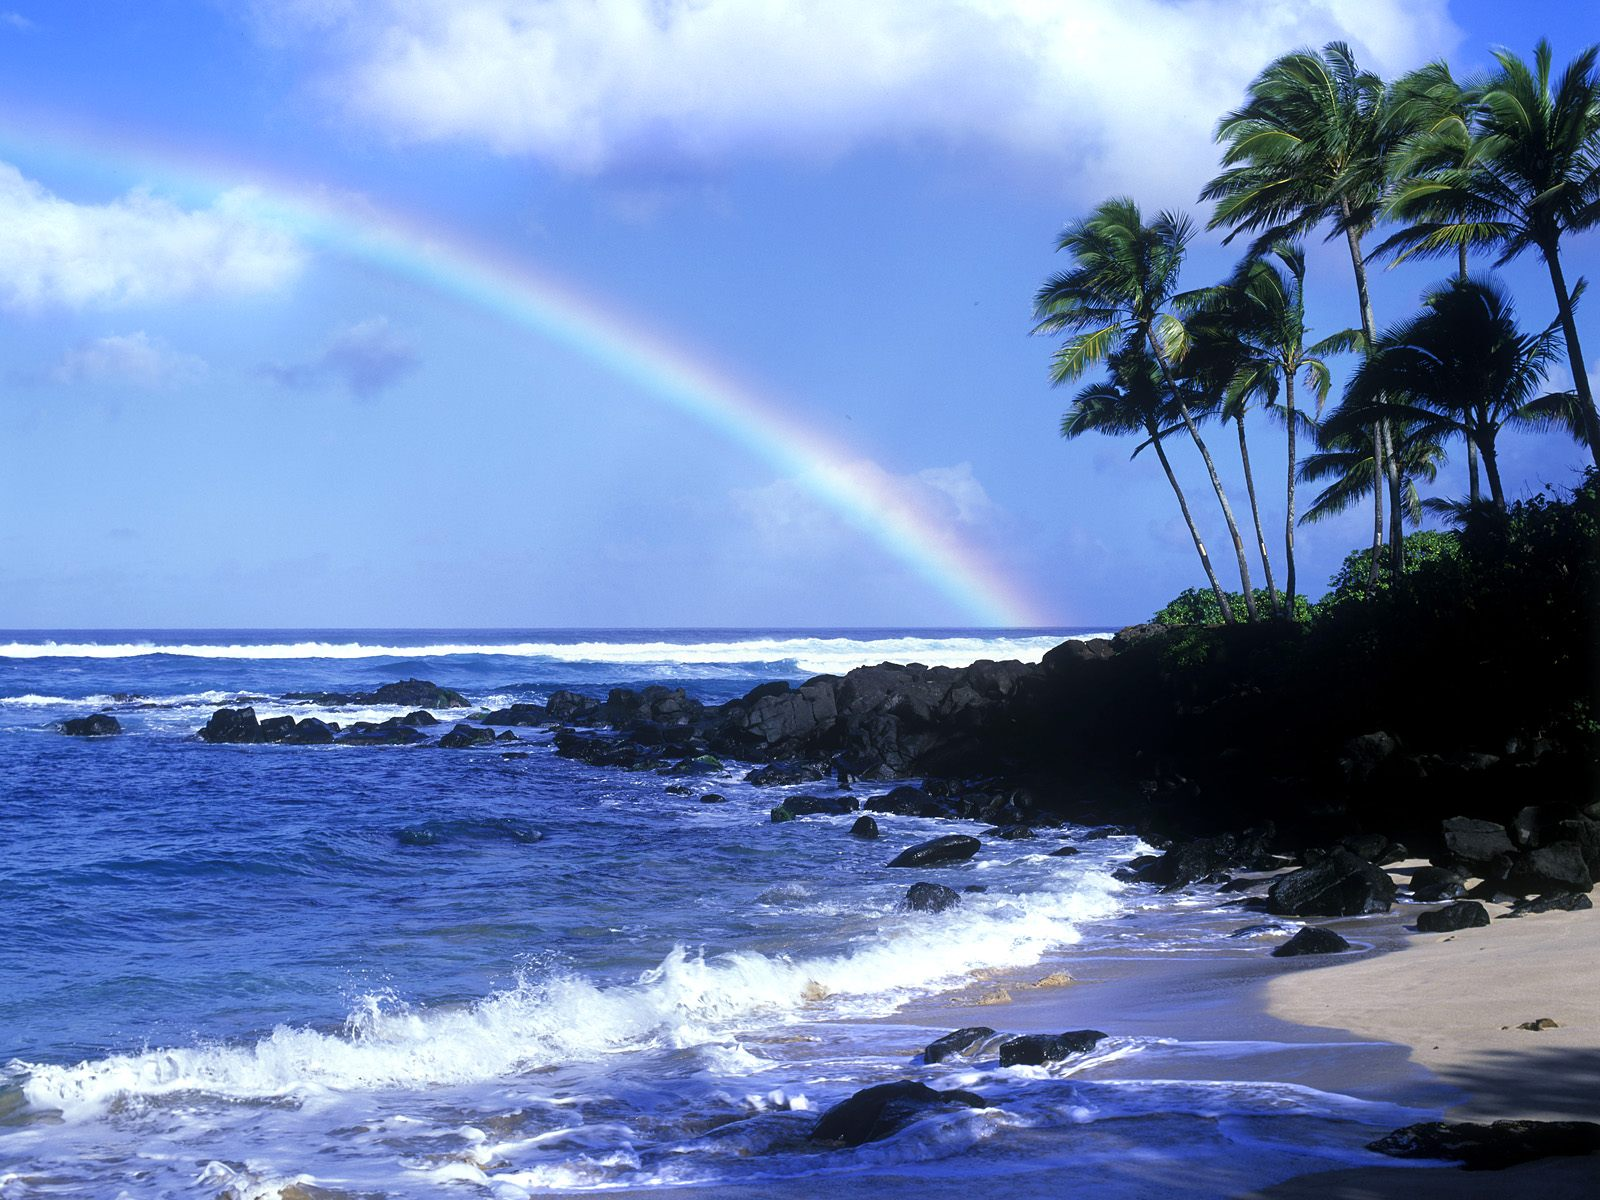 http://3.bp.blogspot.com/-I7II9zFR1YA/T9hkf1CIA0I/AAAAAAAAAiw/vIhHW0yn09A/s1600/Beach+HD+wallpaper+with+raiinbow.jpg